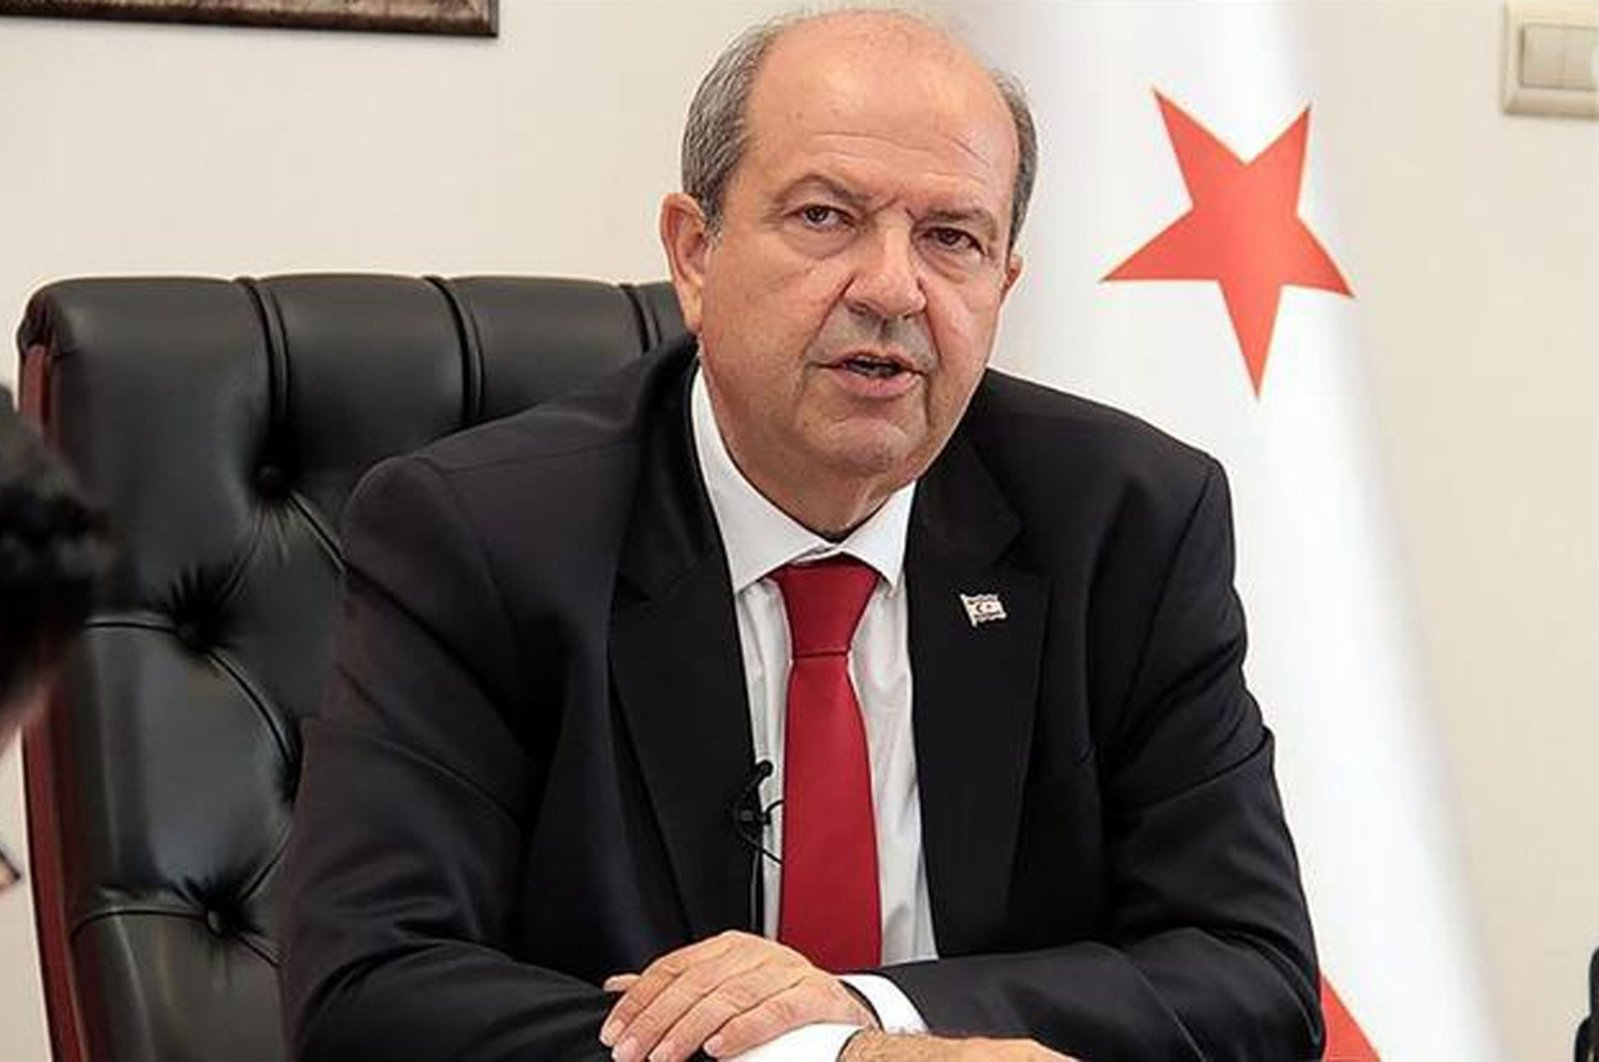 Turkish Republic of Northern Cyprus (TRNC) Prime Minister Ersin Tatar during an interview, Sept. 8, 2020.